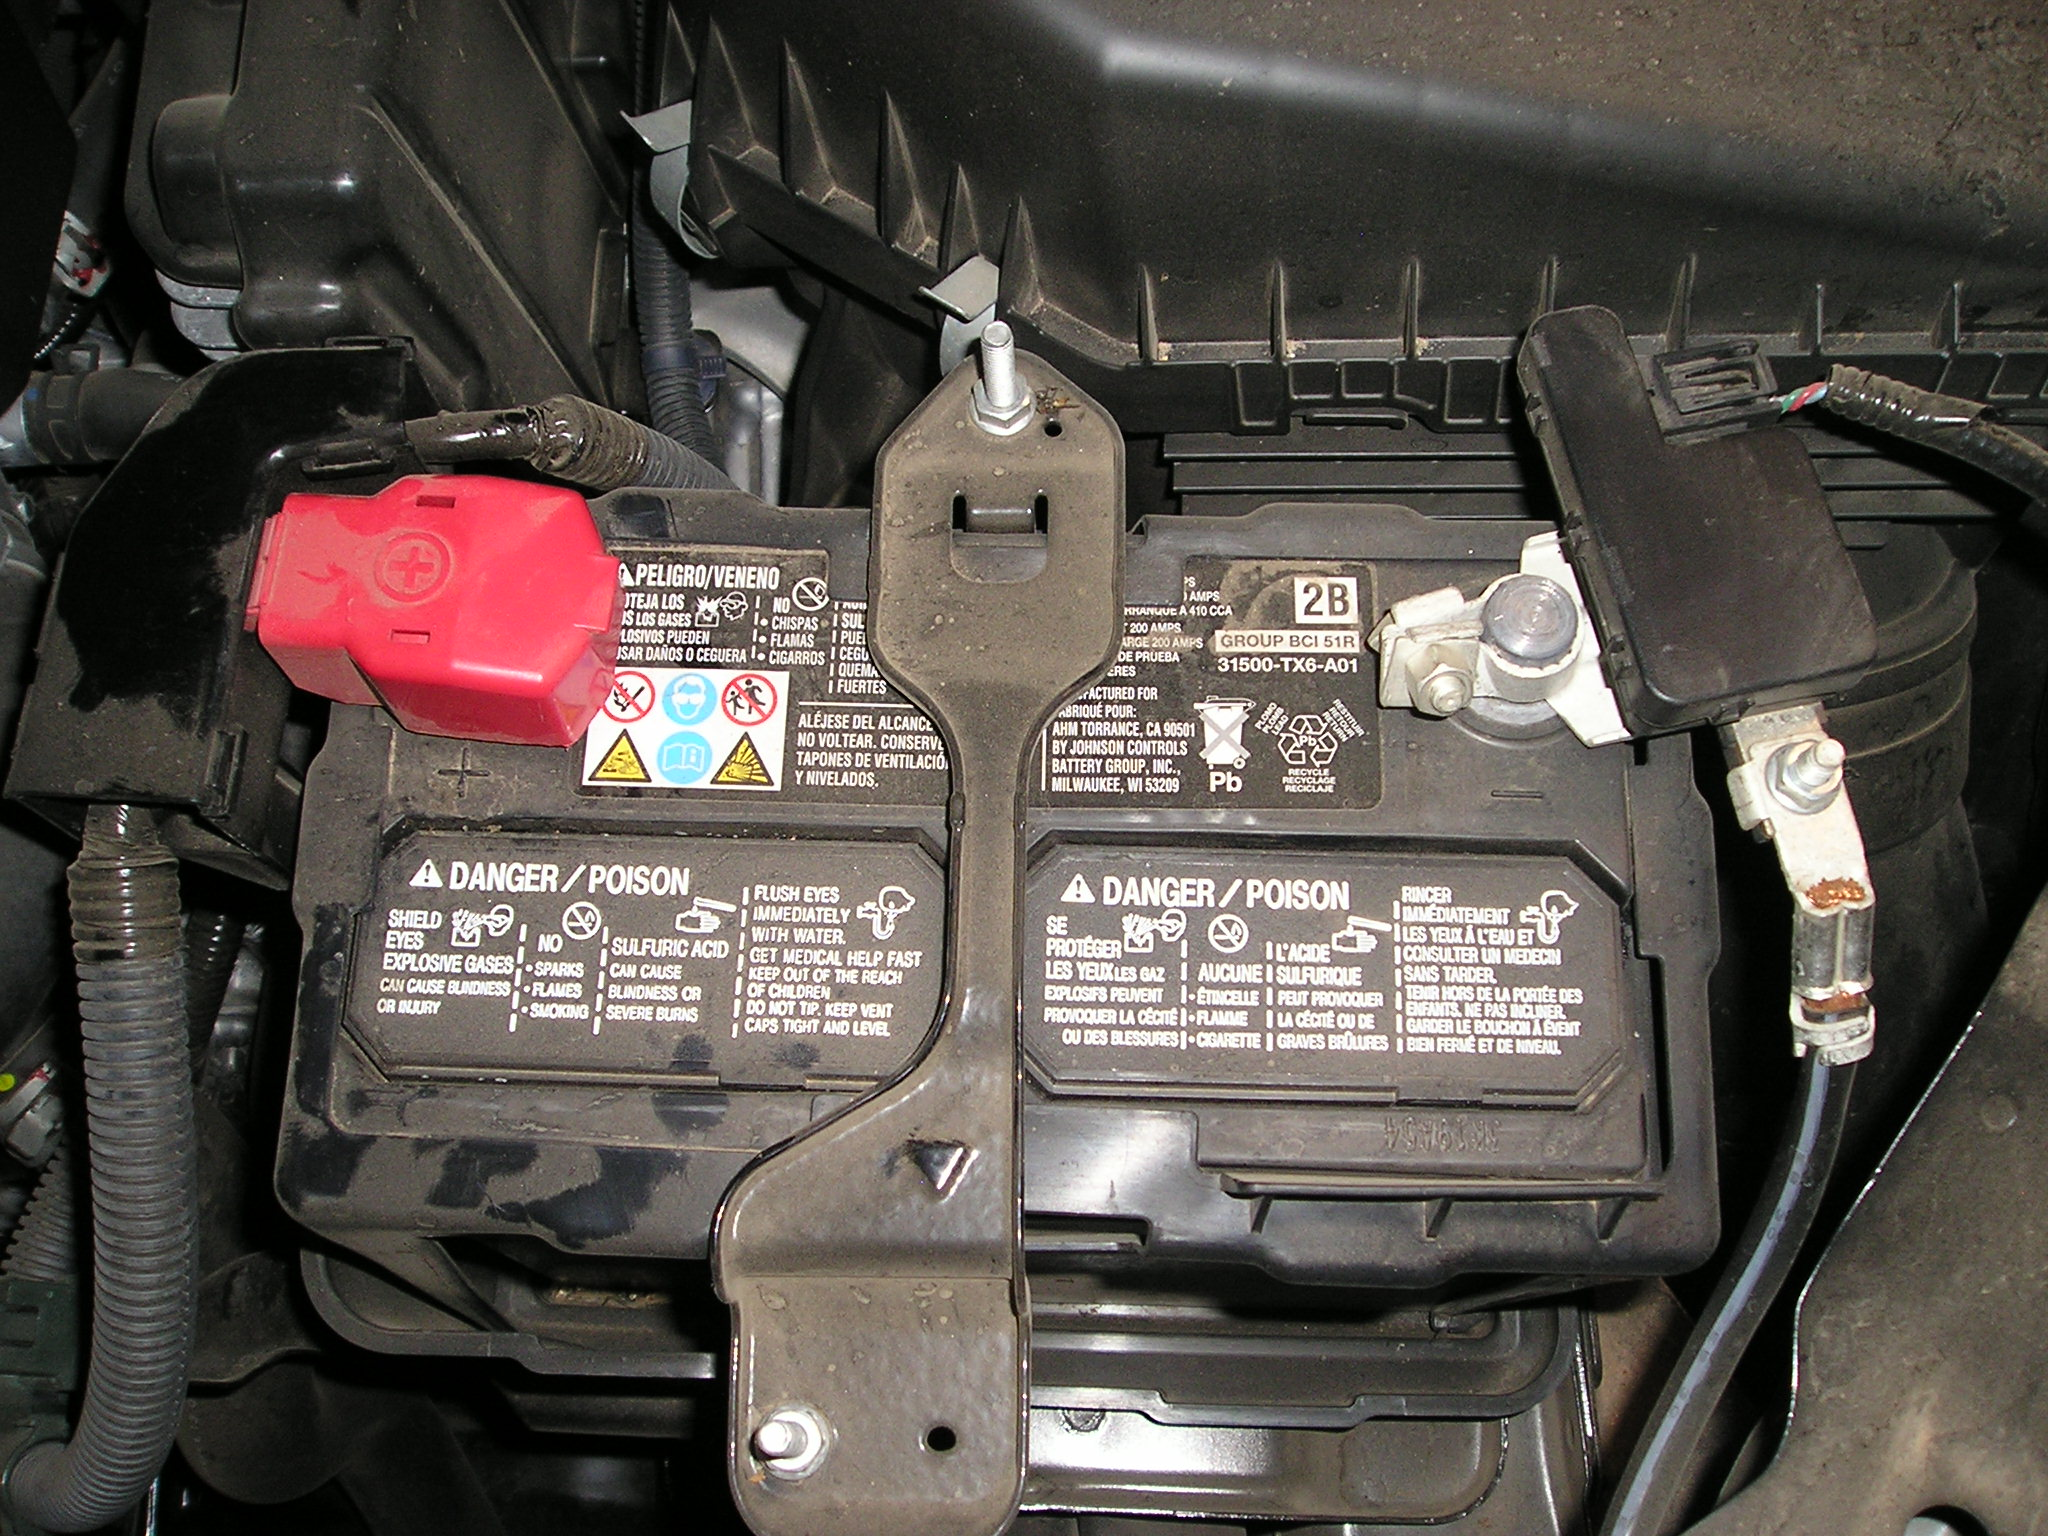 Wiring Grounding Diagram In Addition Honda Civic Power Window Diagrams